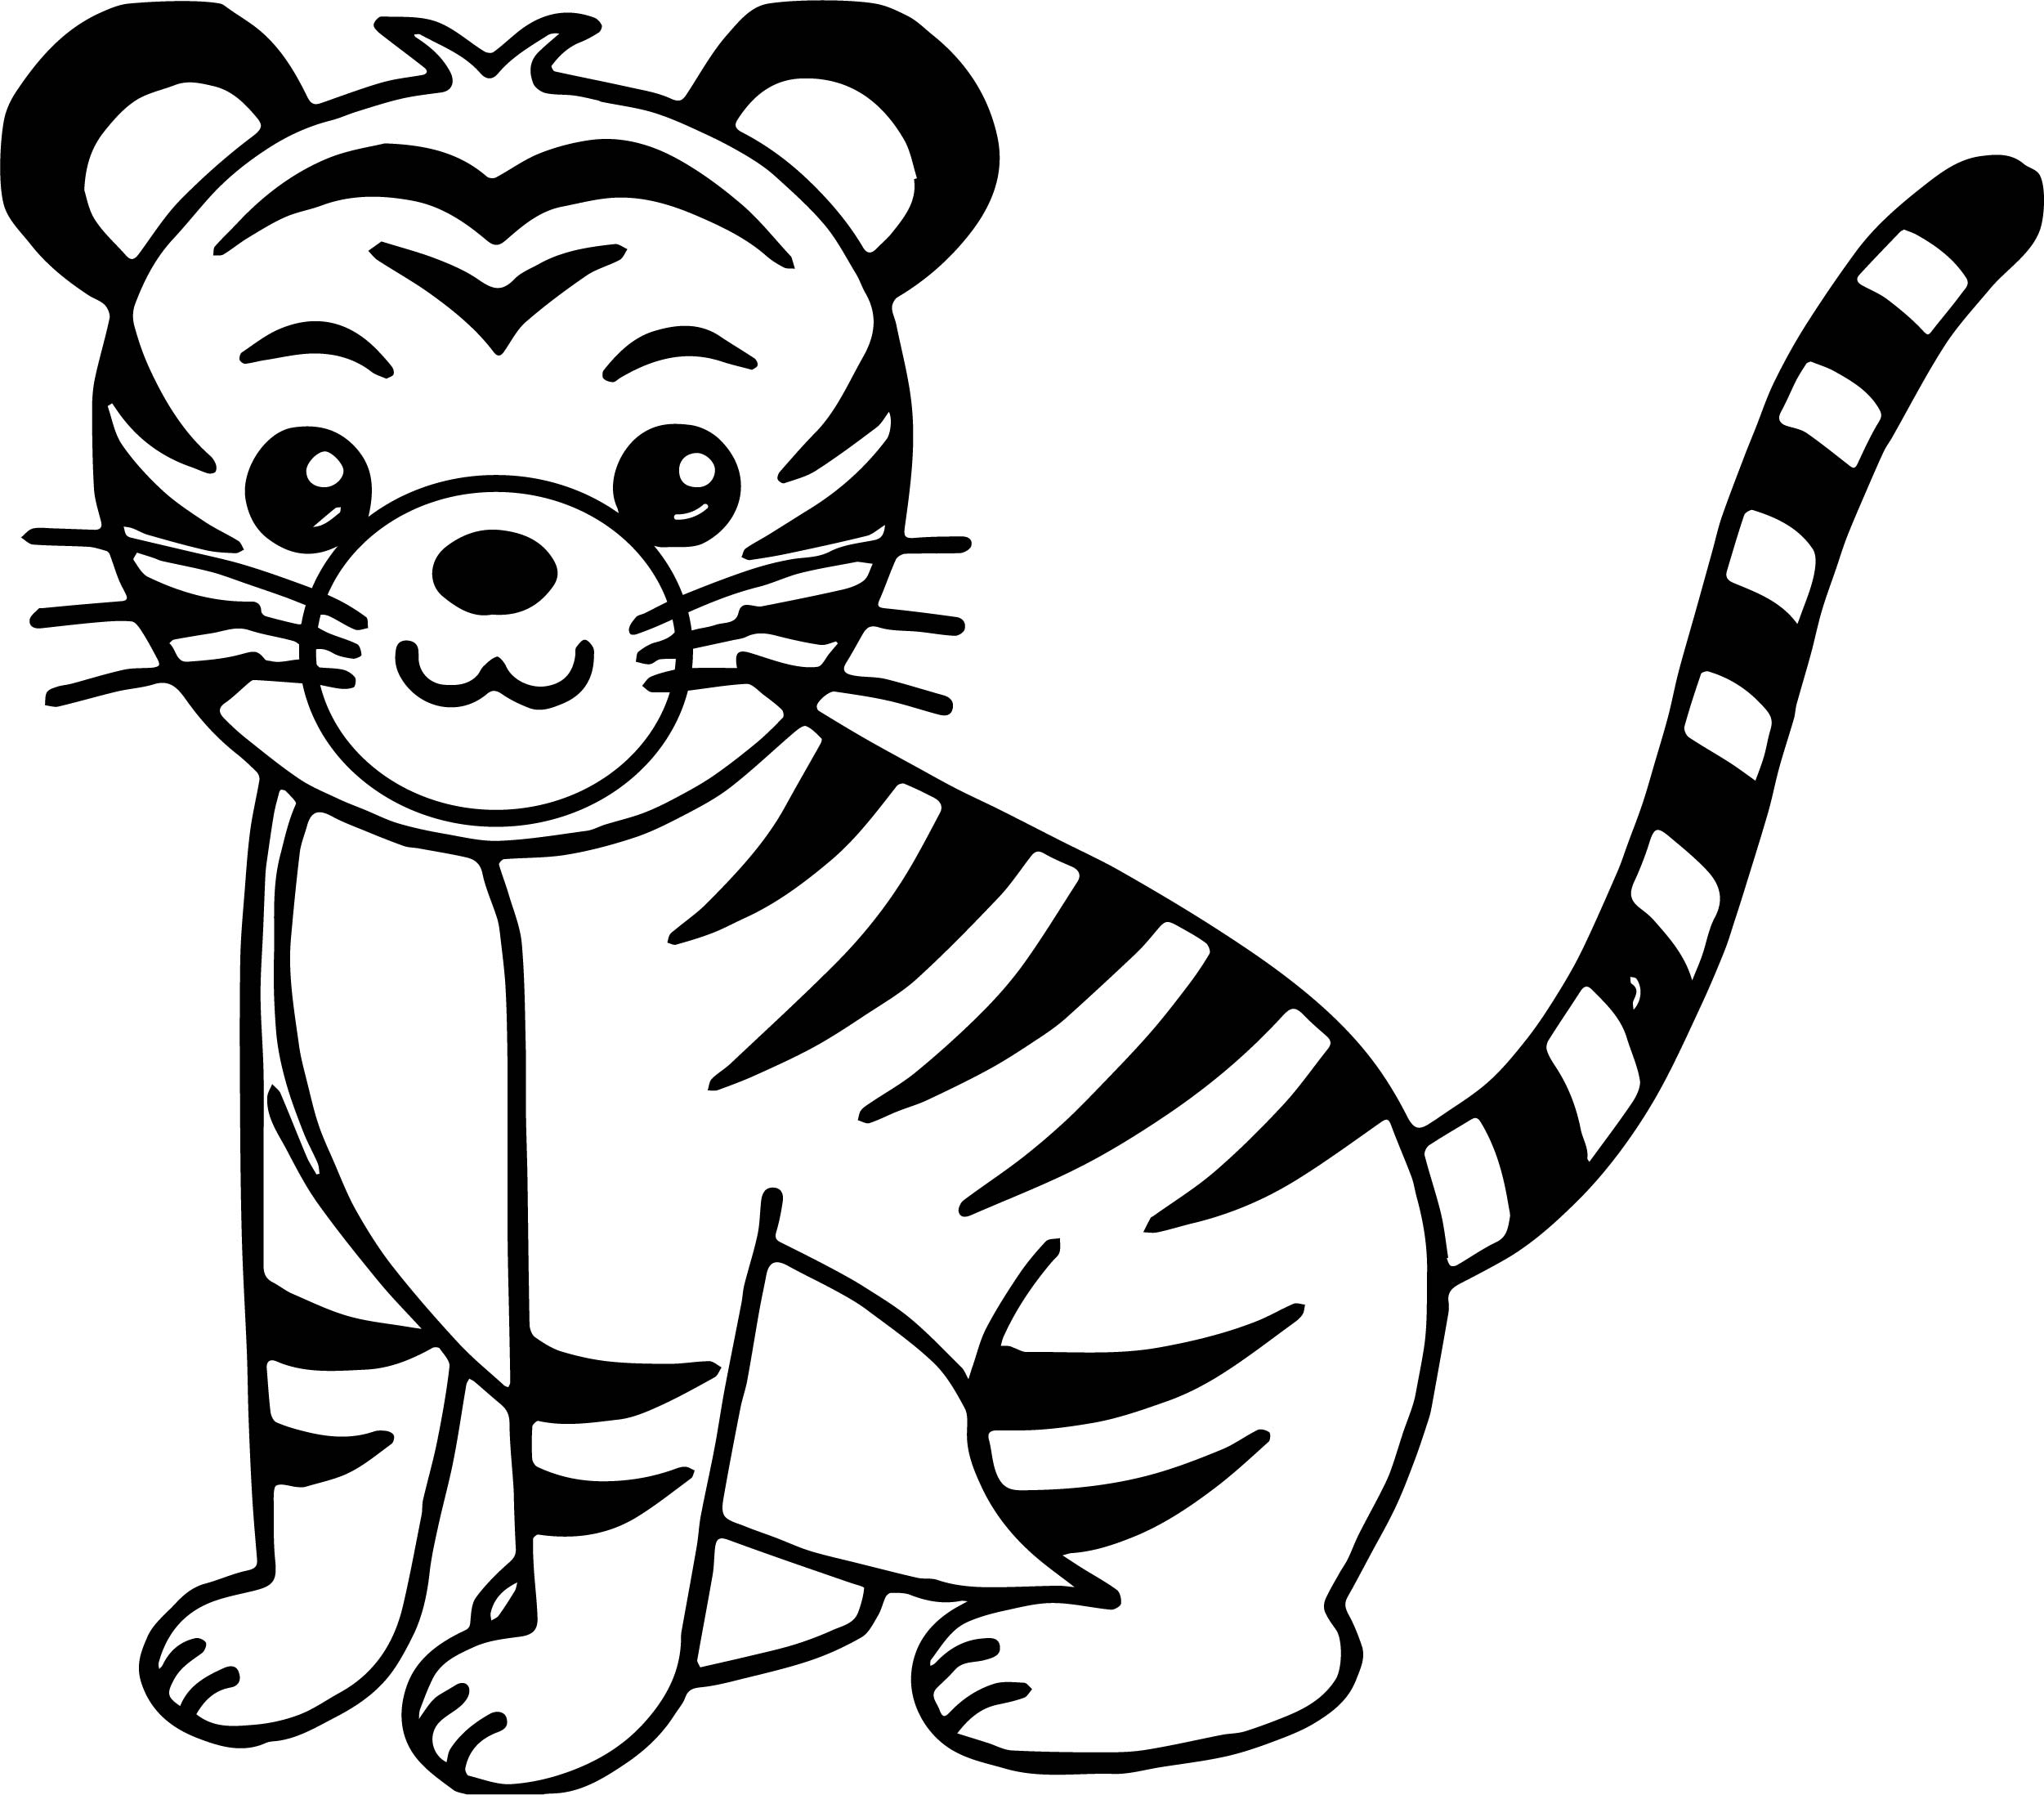 tiger pictures to colour free printable tiger coloring pages for kids to pictures tiger colour